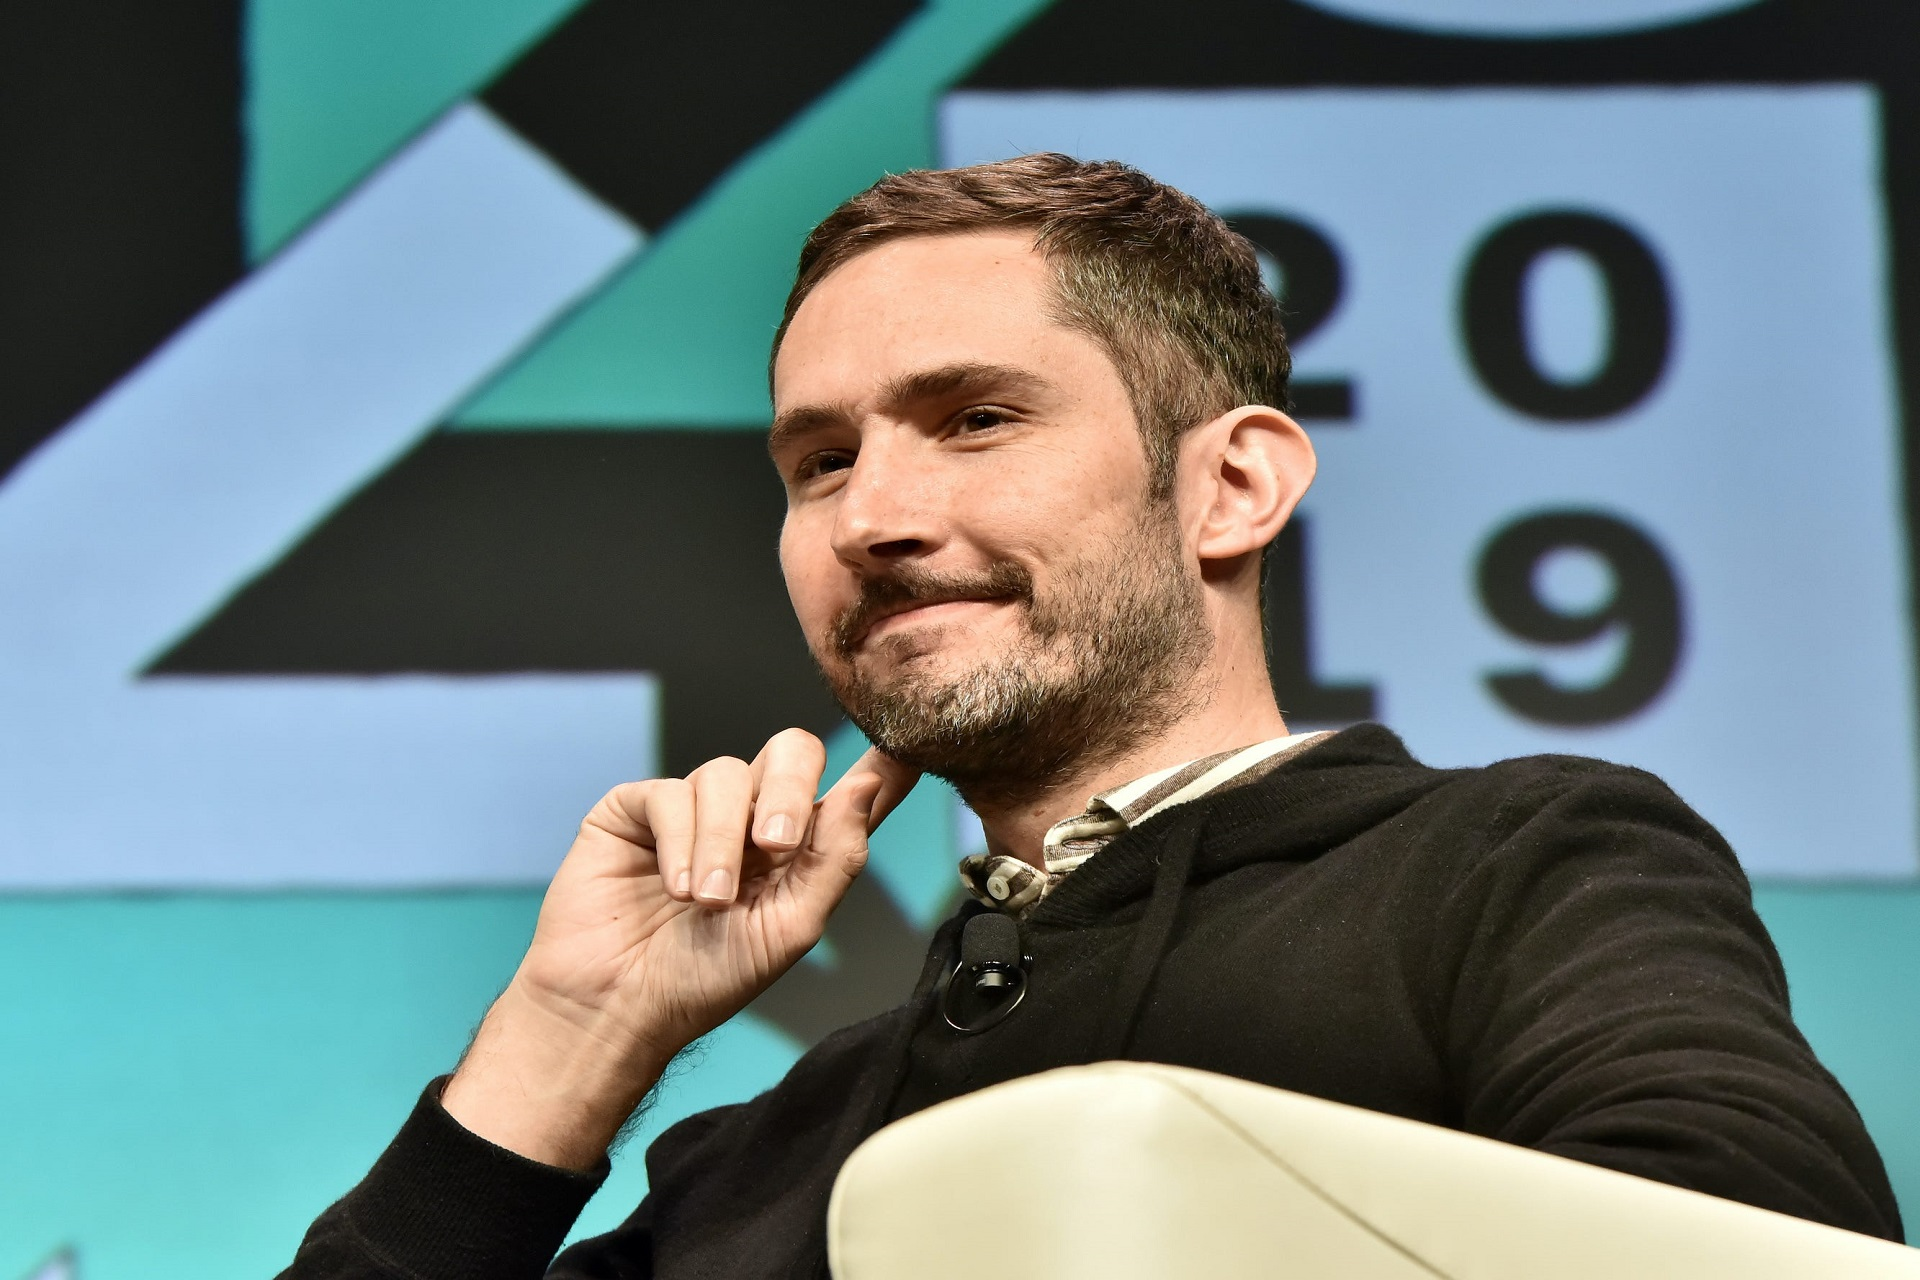 The Inspiring Stories Of 10 Famous Co-Founders